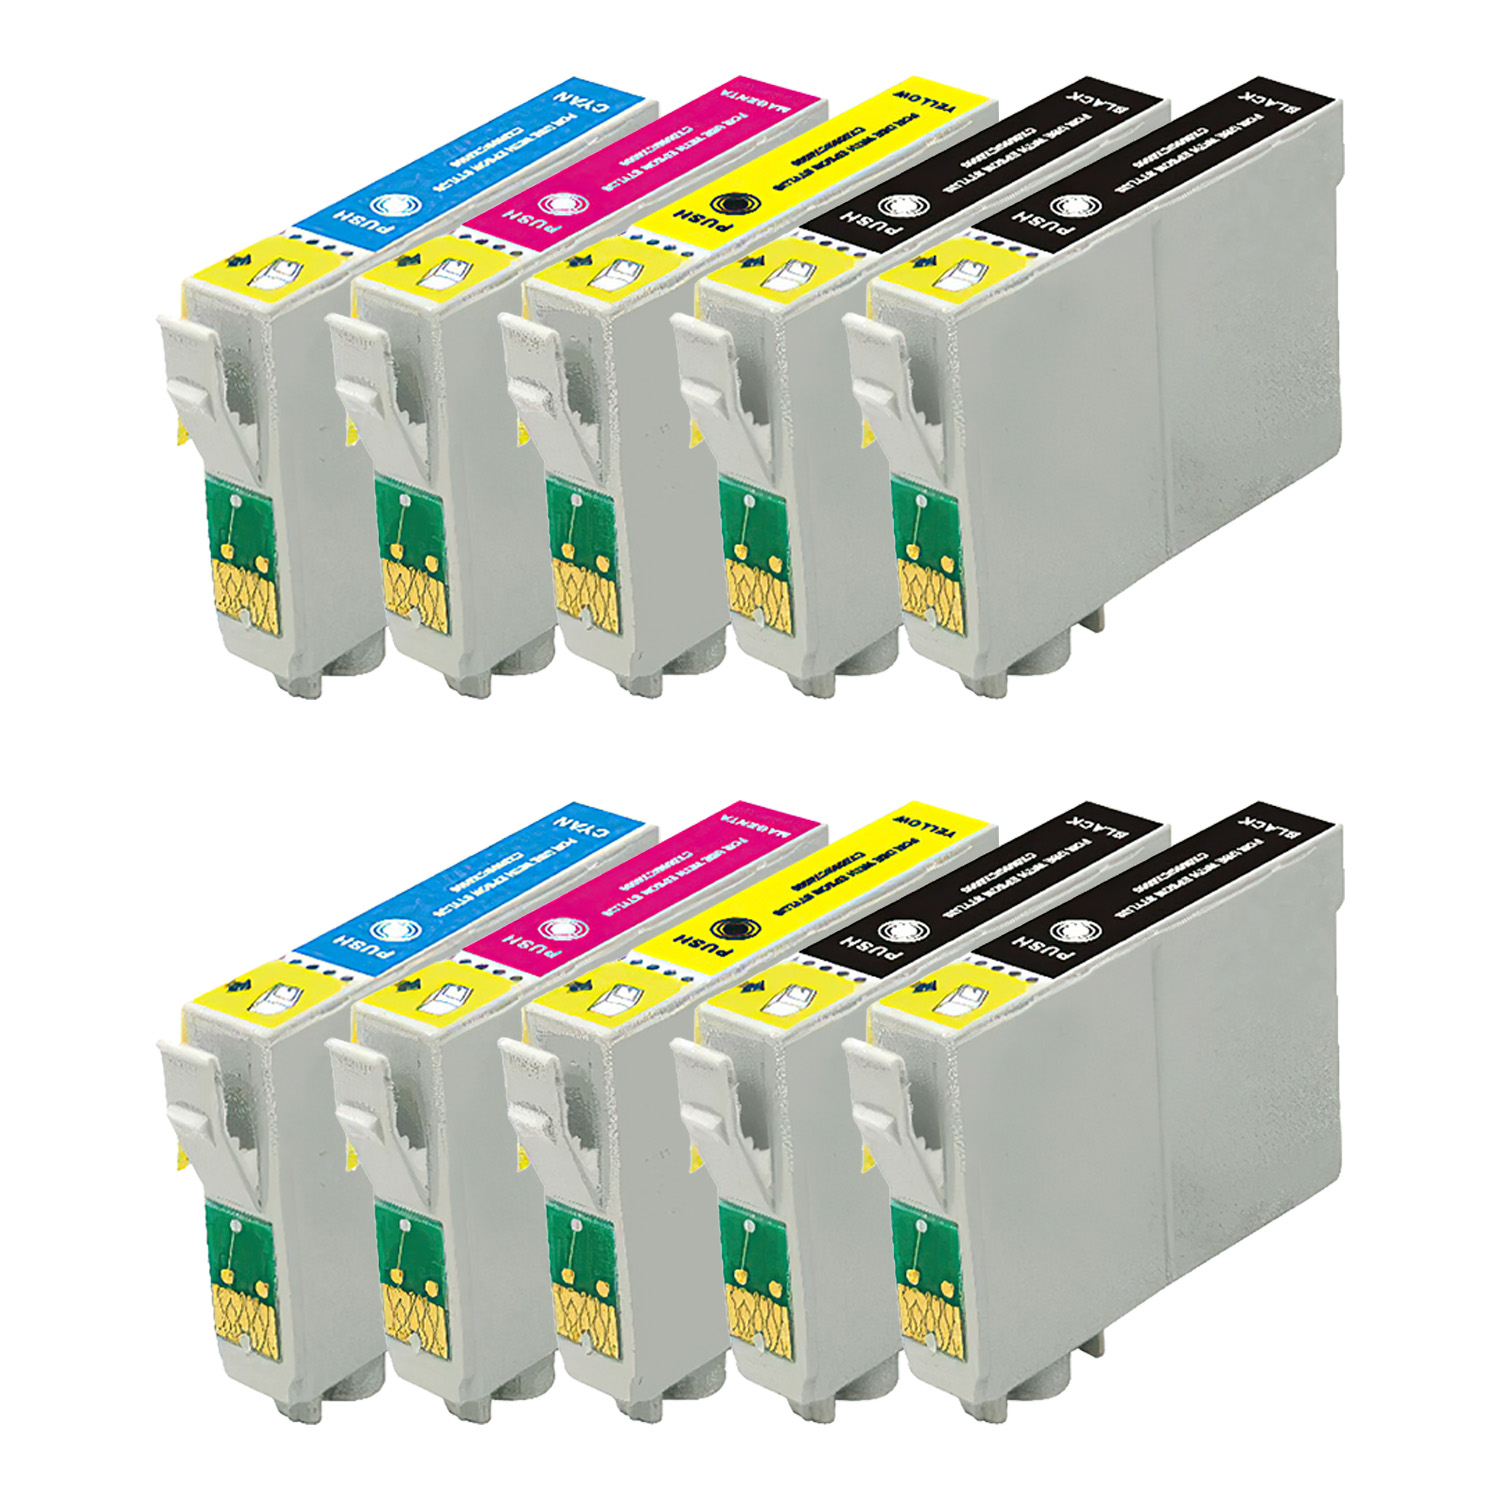 Remanufactured Epson 126 Inkjet High Capacity Pack - 10 Cartridges